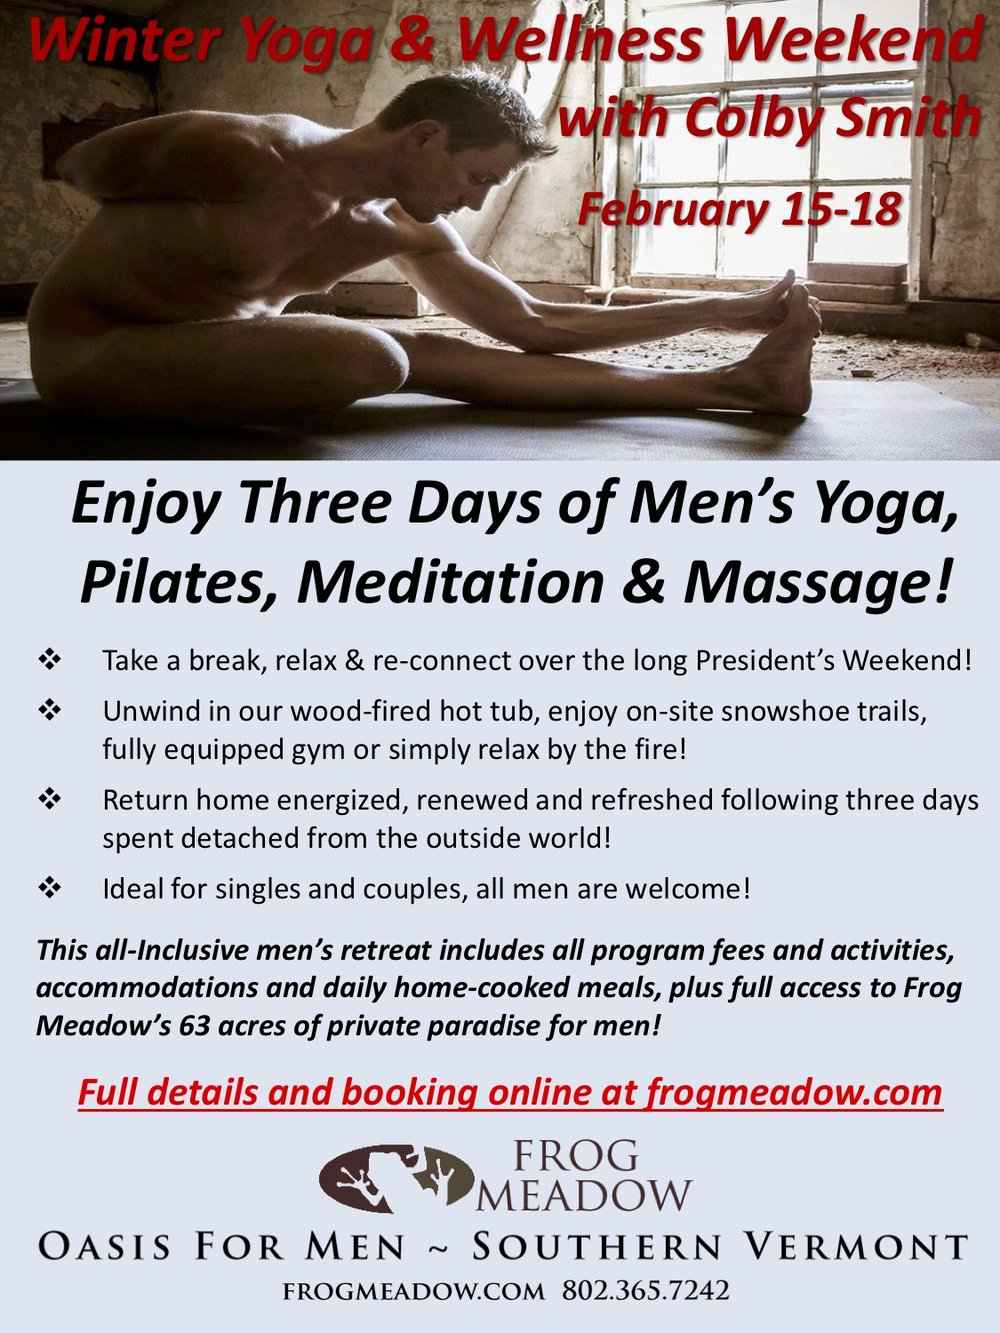 Winter Yoga Wellness Colby Smith Feb 2019 Poster.jpg